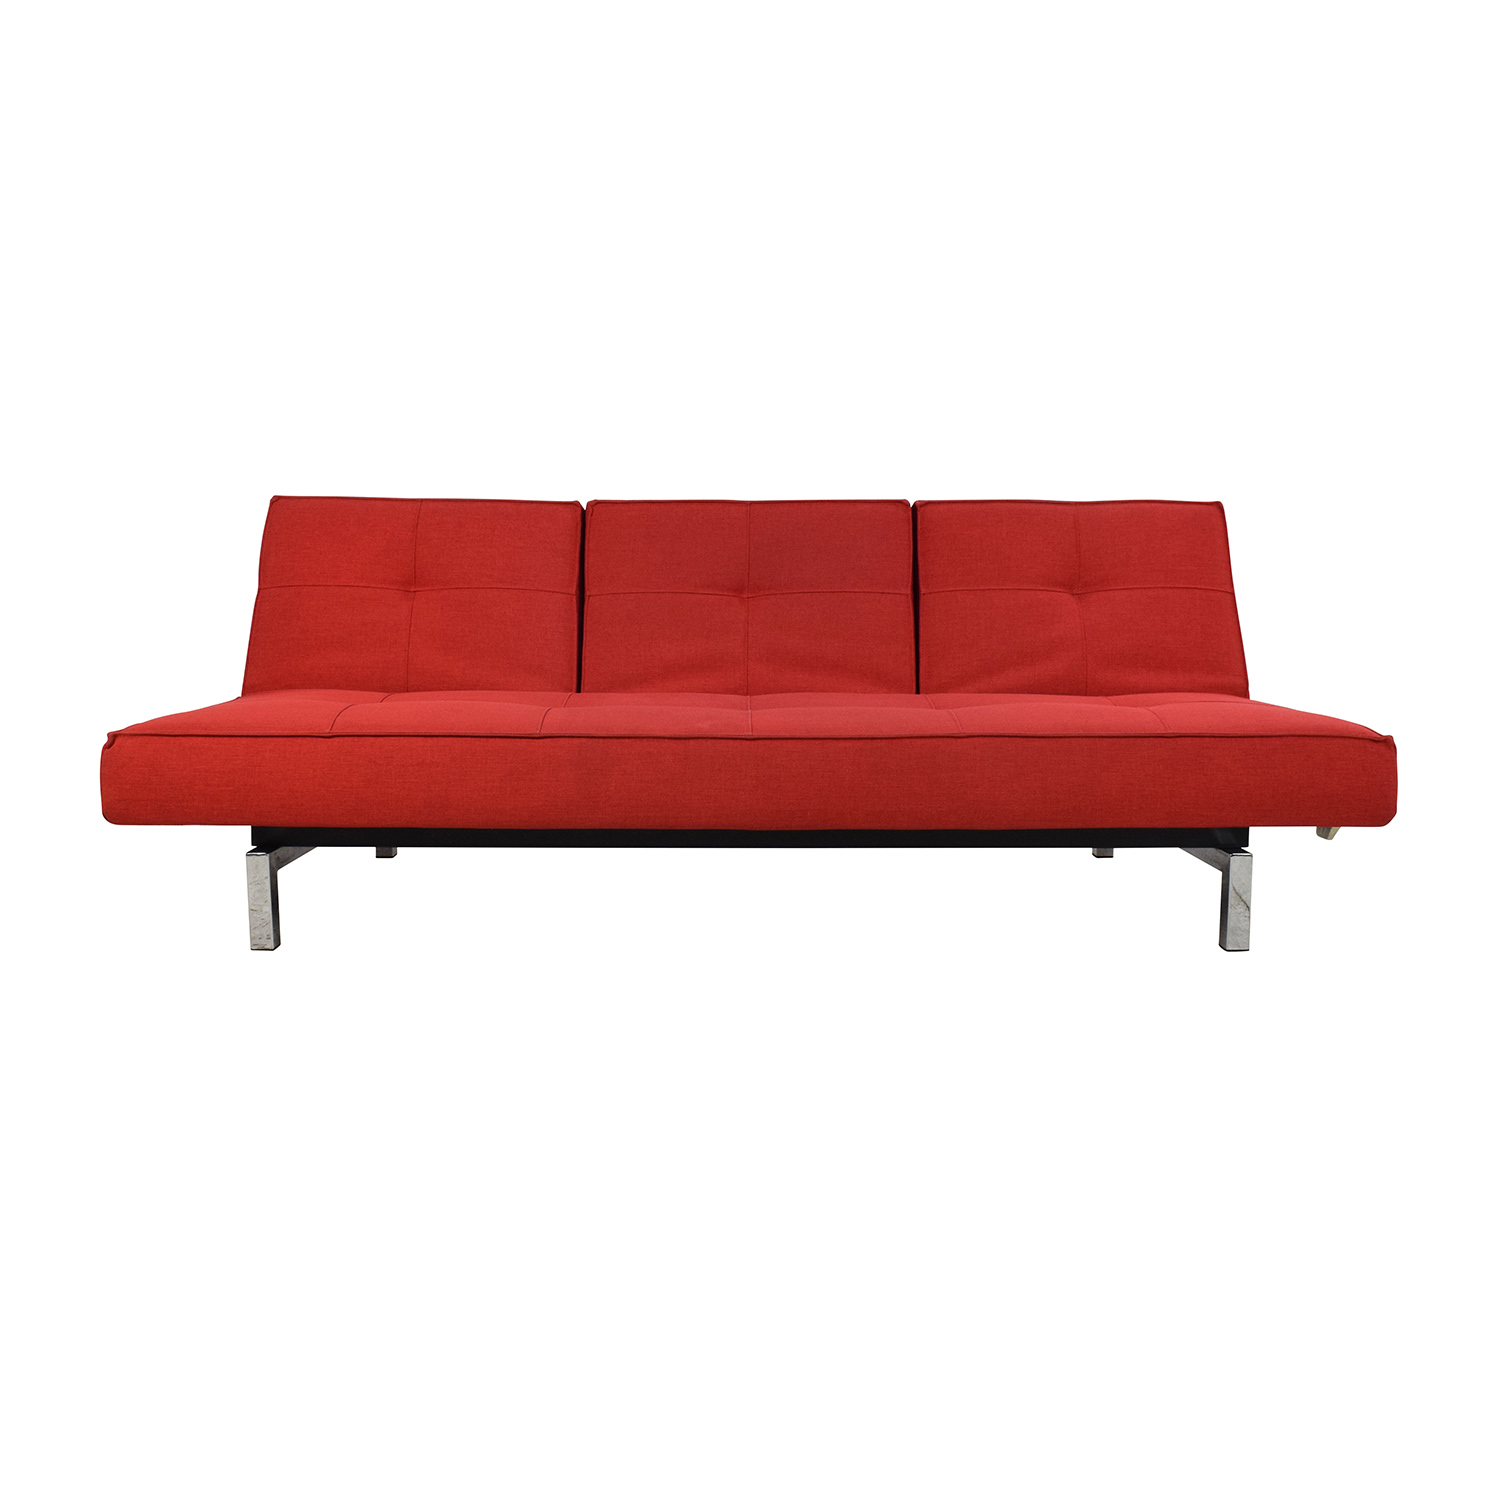 51% OFF - Room & Board Room & Board Eden Convertible Red Sofa / Sofas